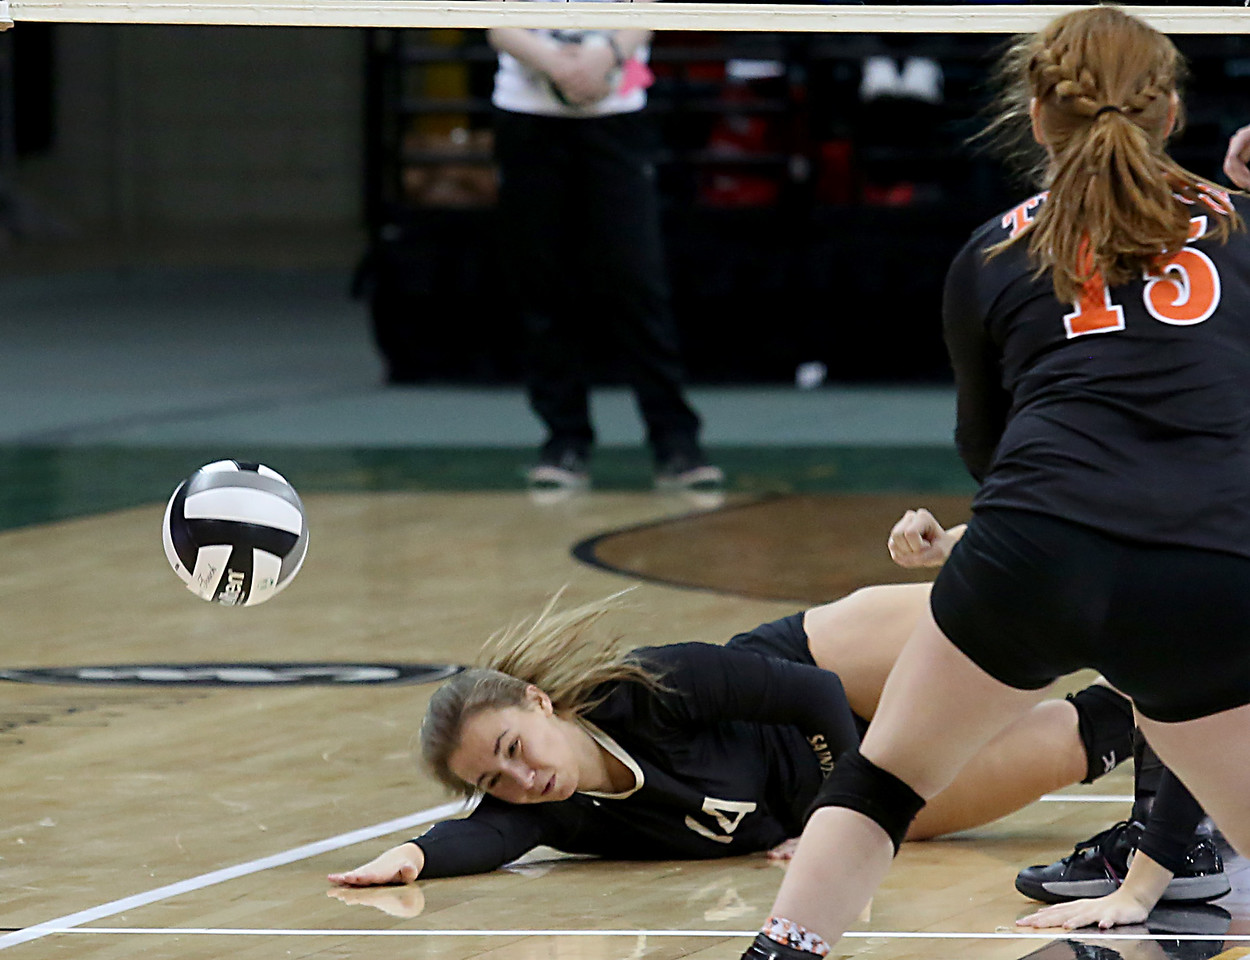 E.L. Hubbard / Special to GateHouse Ohio Media<br /> New Philadelphia Tuscarawas Central Catholic's Katie Churilla can't get to a Jackson Center volley during their Division IV State Championship game at Wright State's Nutter Center in Fairborn Saturday, Nov. 12, 2016.